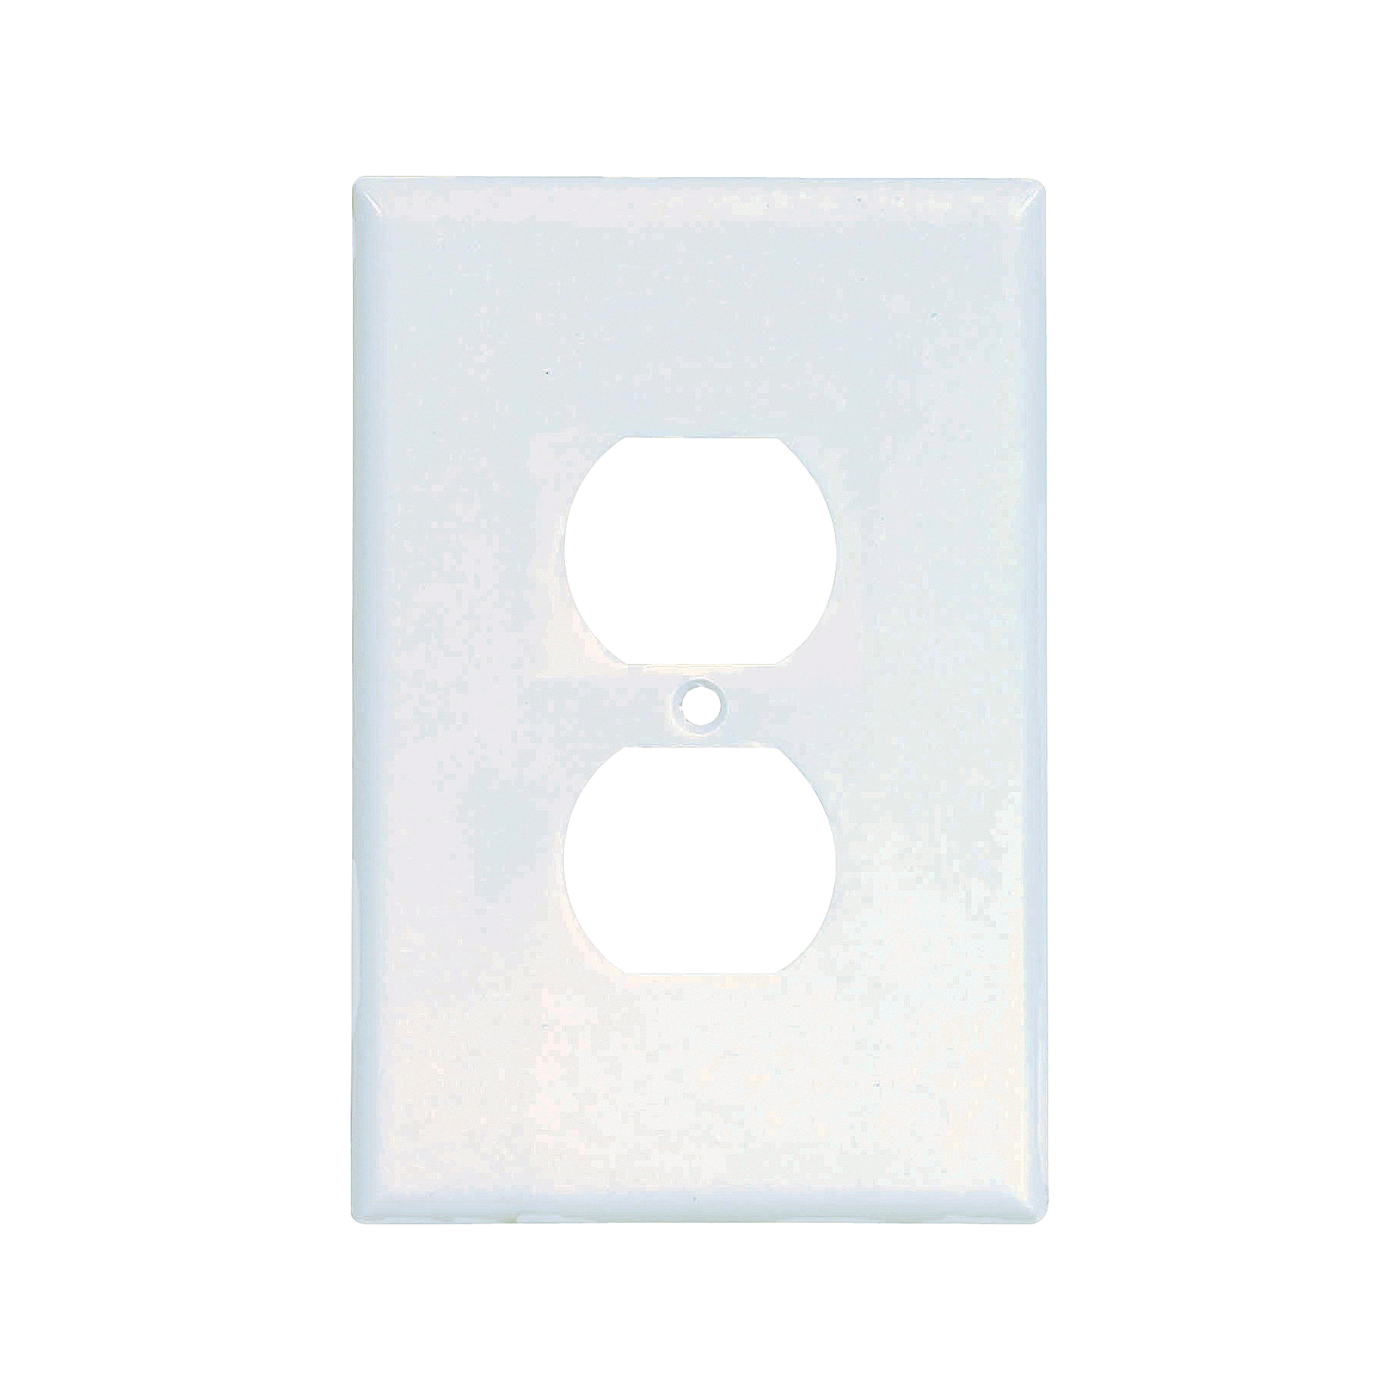 Picture of Eaton Wiring Devices 2142W-BOX Duplex Receptacle Wallplate, 5-1/4 in L, 3-1/2 in W, 1-Gang, Thermoset, White